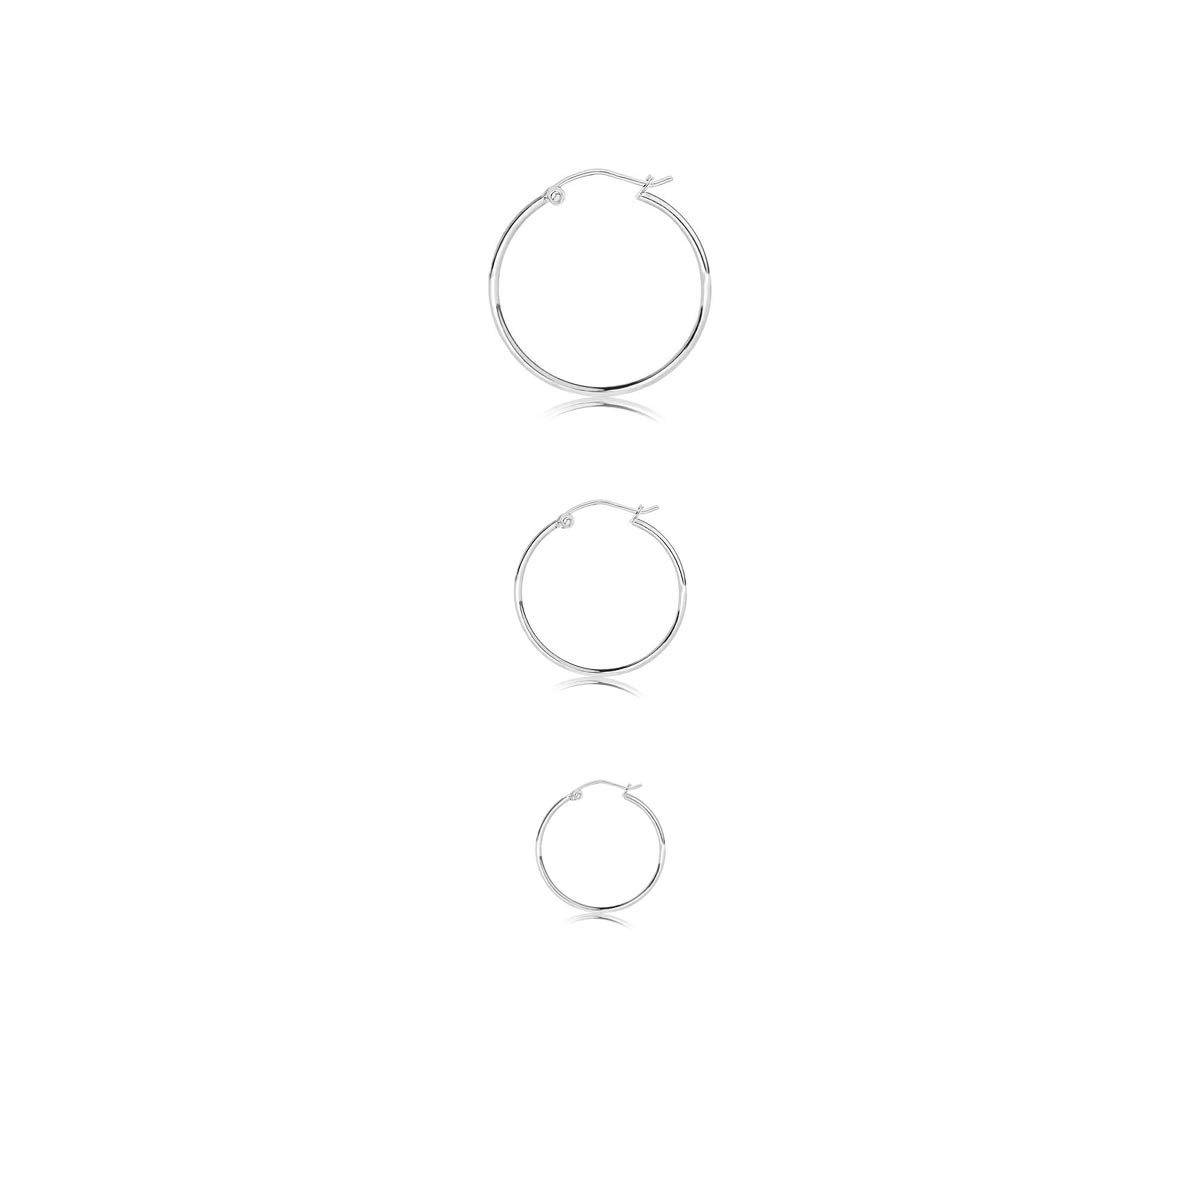 Sterling Silver French Lock Round Unisex Hoop Earrings, Set of 3 Pairs 10mm 12mm 16mm